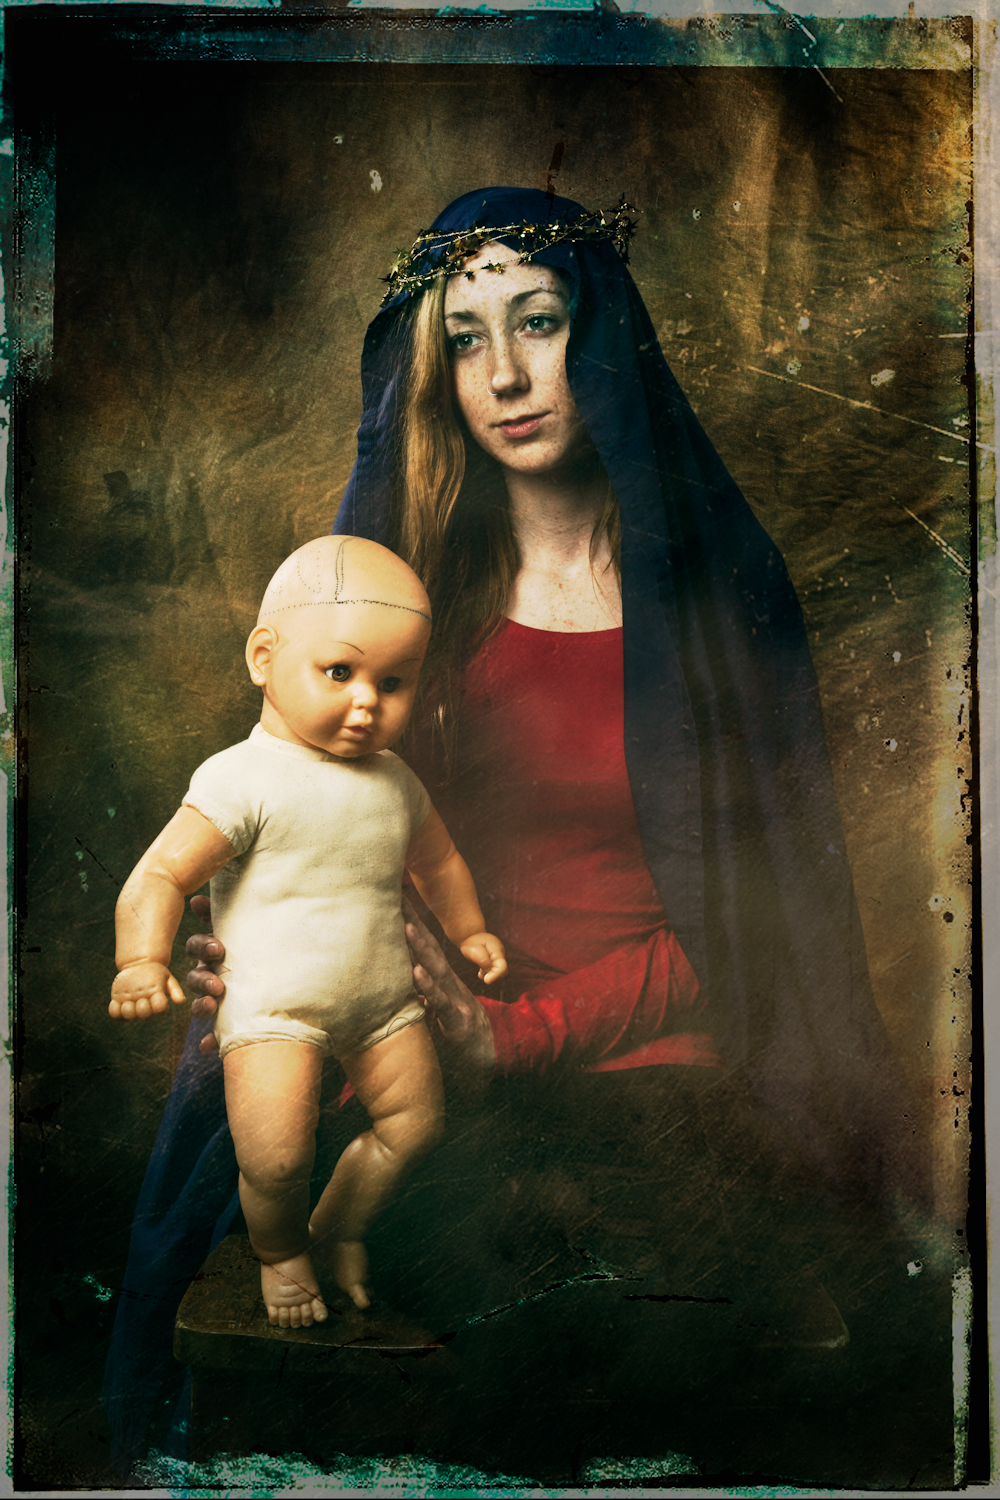 """Madonna and Child""   - Merit Award winner and Viewpoint Photographic Art Center Award winner for Color Photography."